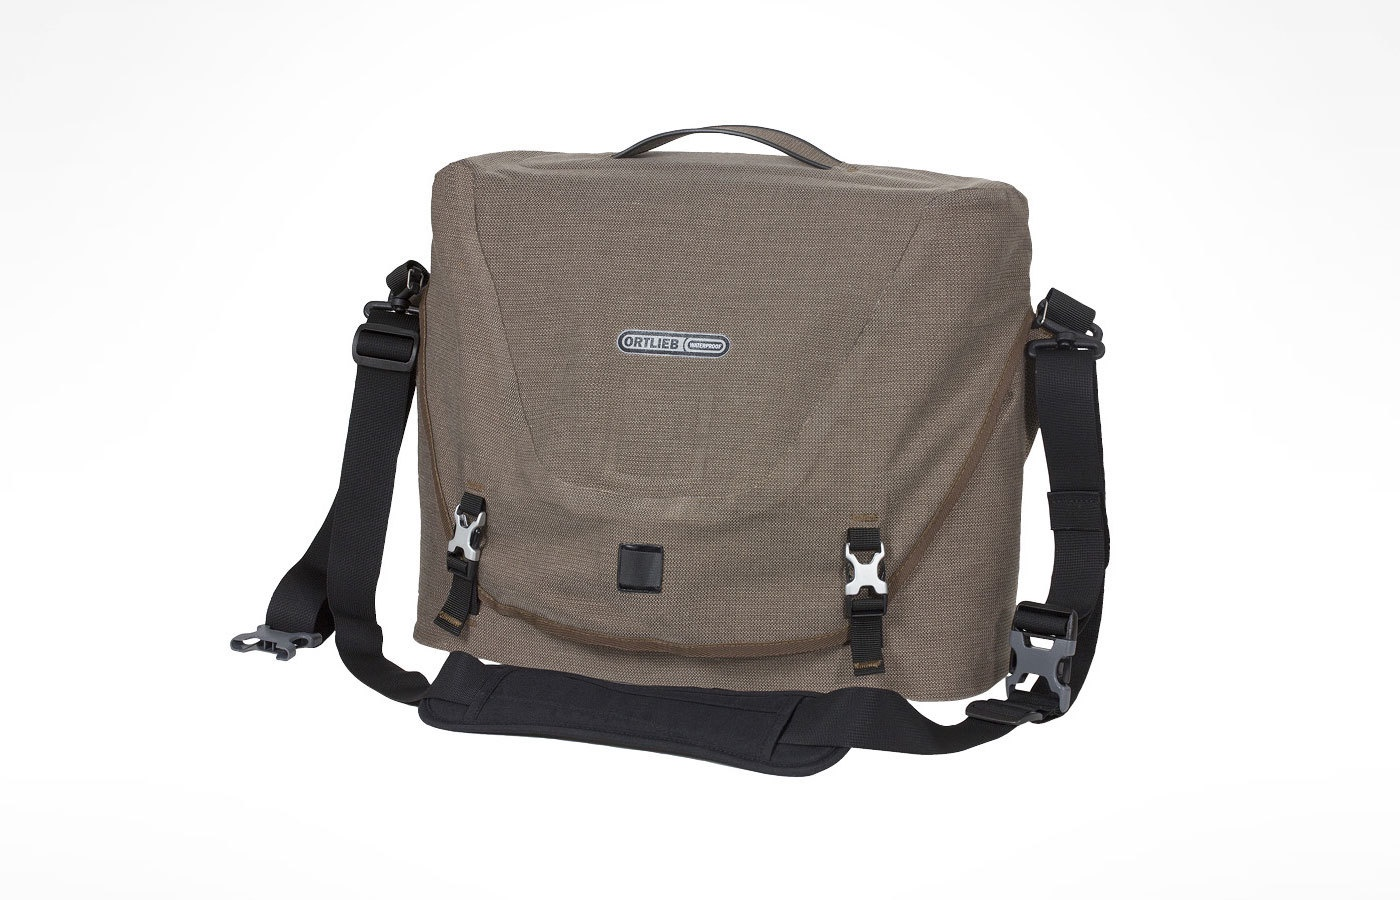 Ortlieb Courier Bag Urban Line